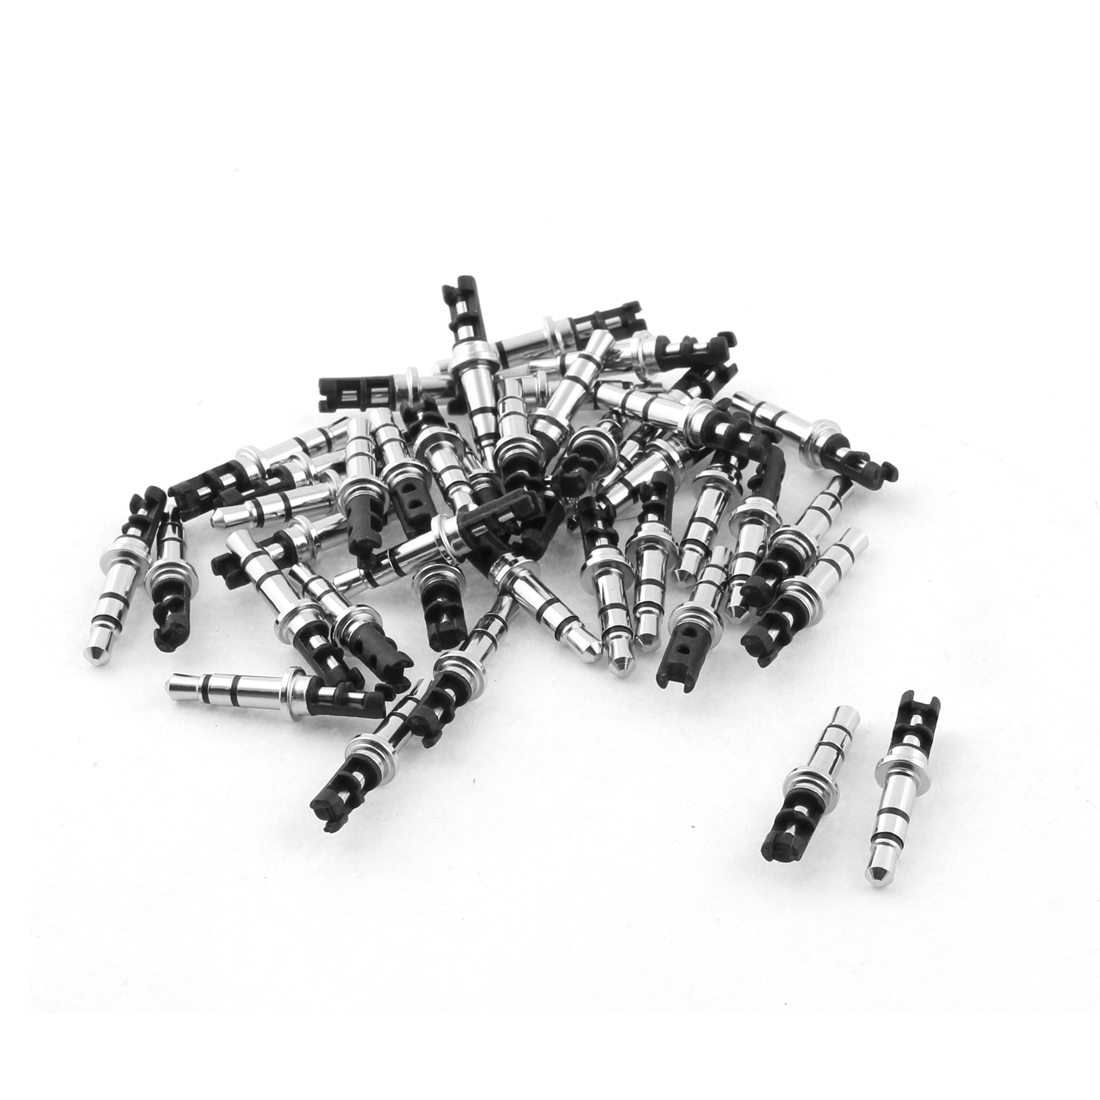 35mm Stereo Male Plug Repair Audio Headphone Jack Solder Connector Wiring Black 40pcs